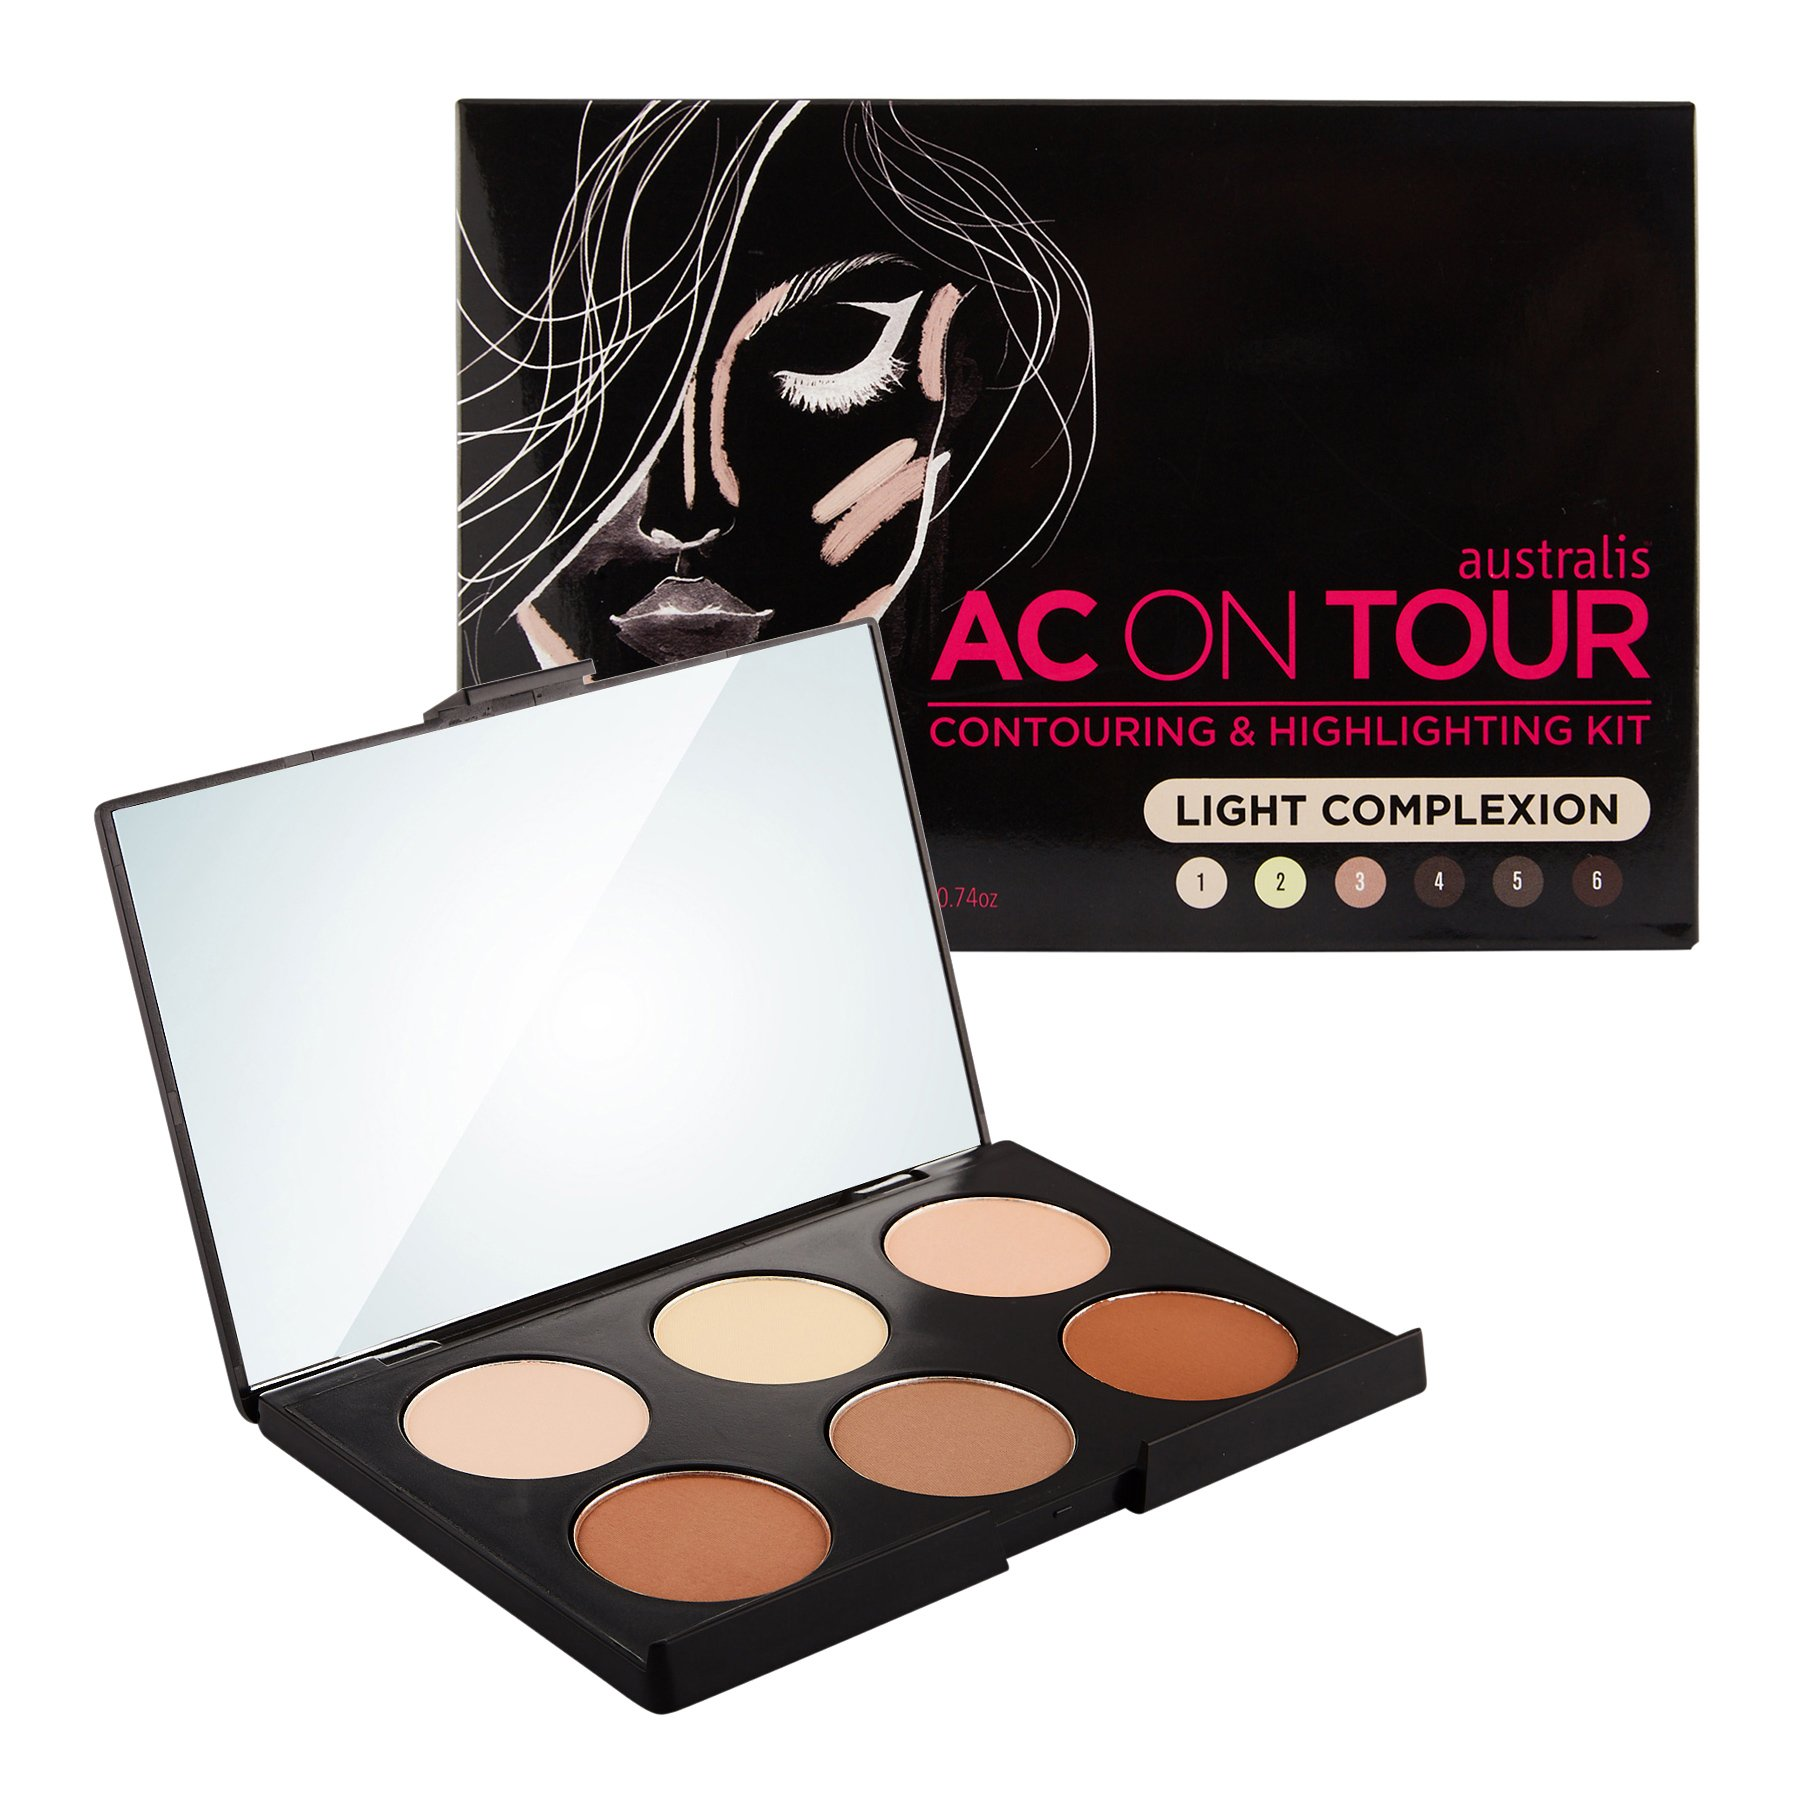 Australis AC On Tour Powder Contouring & Highlighting Healthy Glow Palette Makeup Cosmetics - Light